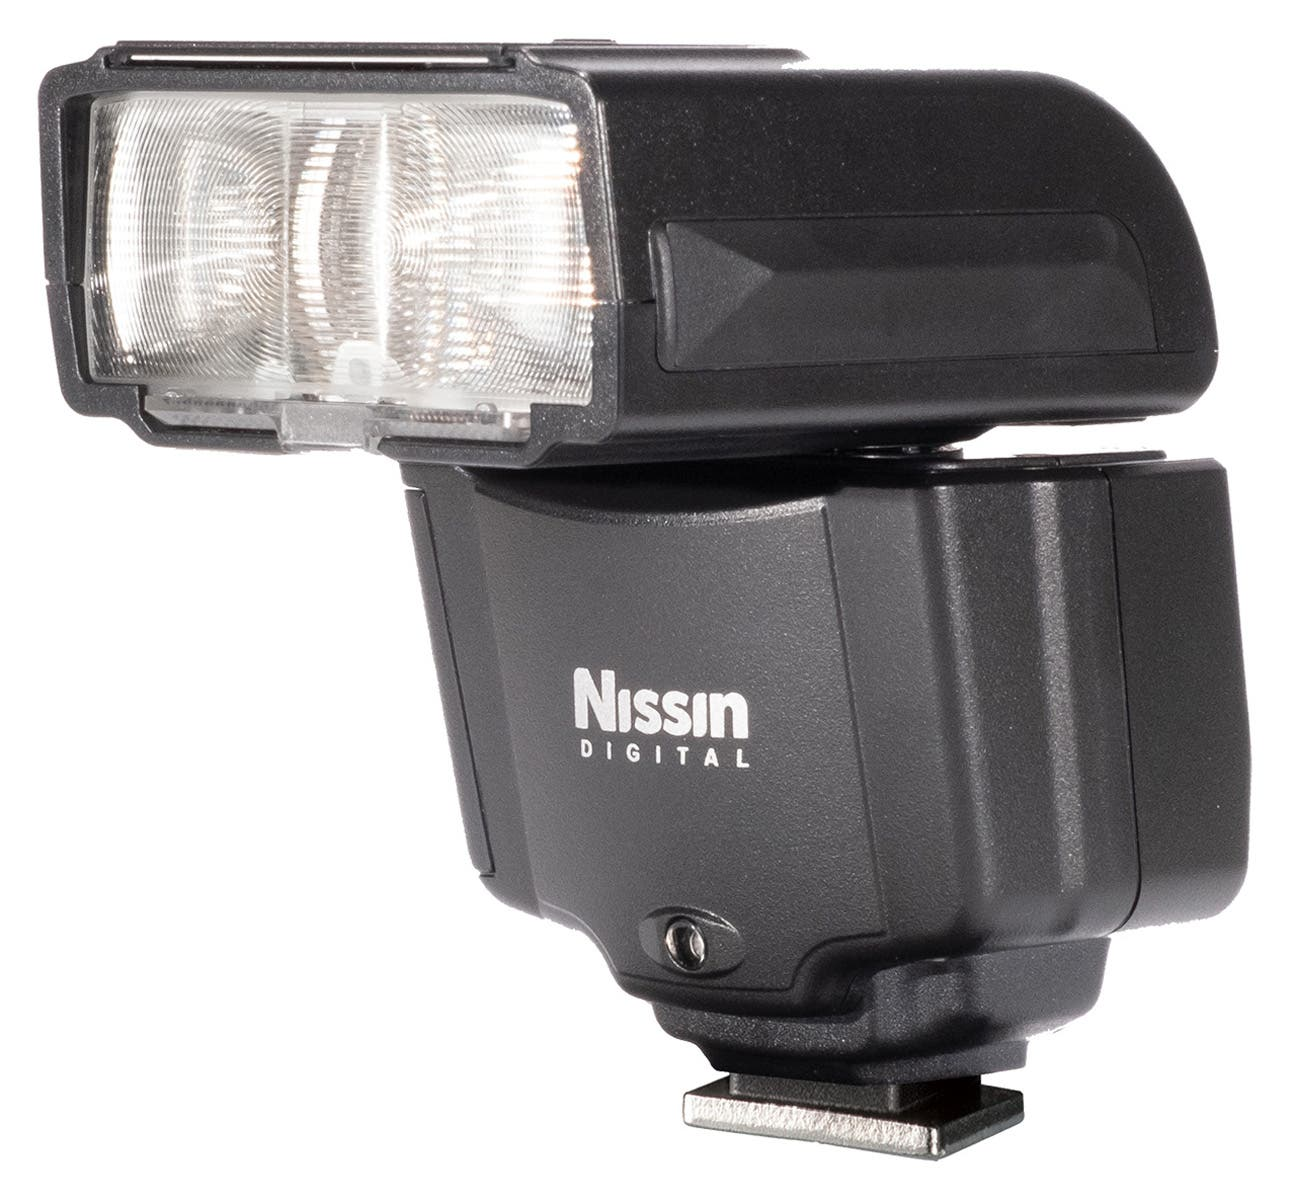 Nissin Announces New Powerful and Compact i400 Flash